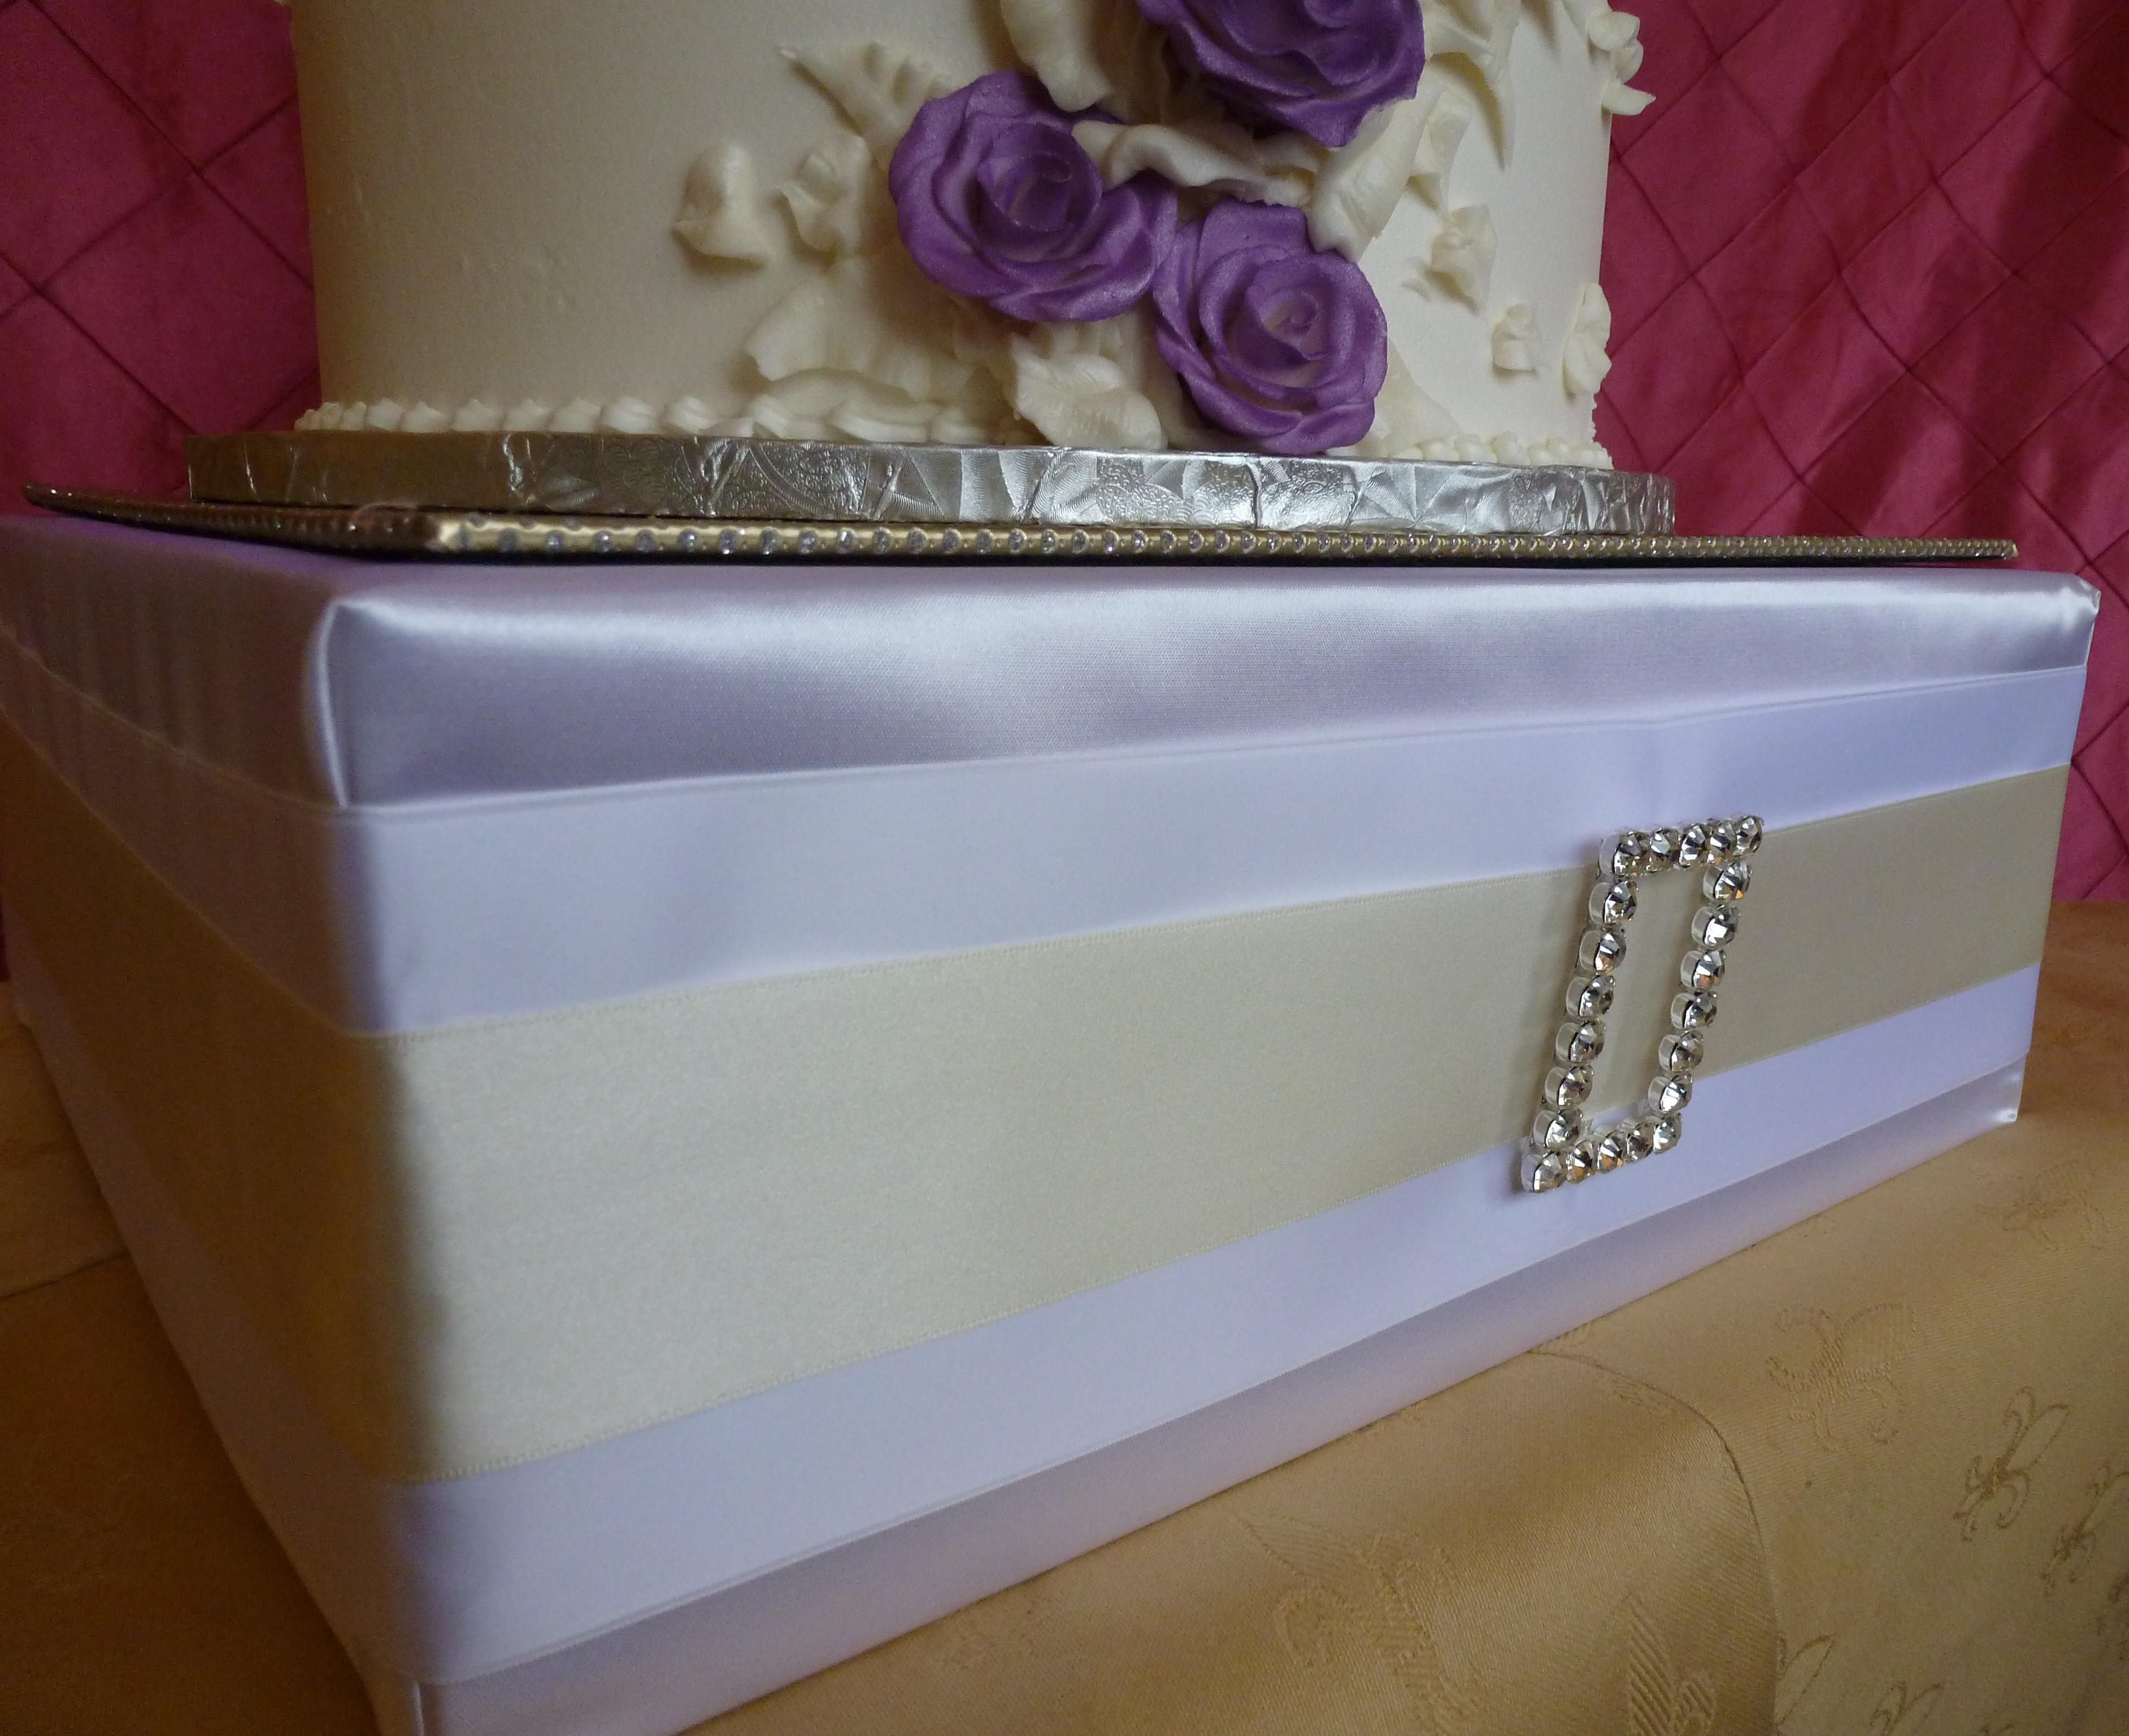 #Bridal #Buckle Debut #Couture #CakeStand #Ivory #White #Satin #Rhinestone by Cake It Up, LLC www.cakeitupcakestands.com